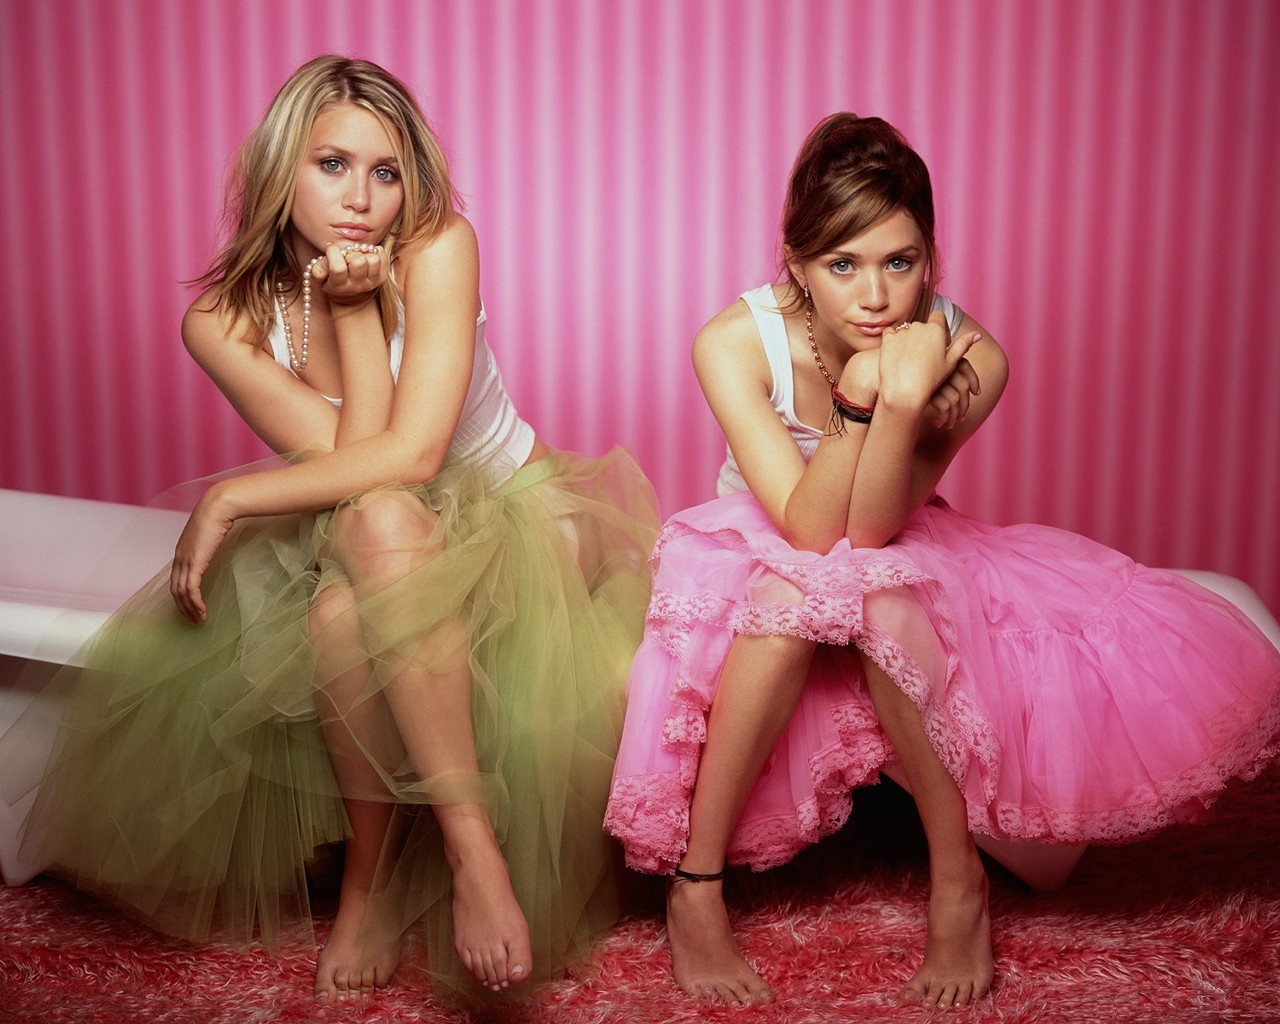 http://2.bp.blogspot.com/-7-woFD13D0Q/TuBfdaeKEzI/AAAAAAAAA8E/XAubDckg0Kg/s1600/mary-kate-and-ashley-olsen.jpg